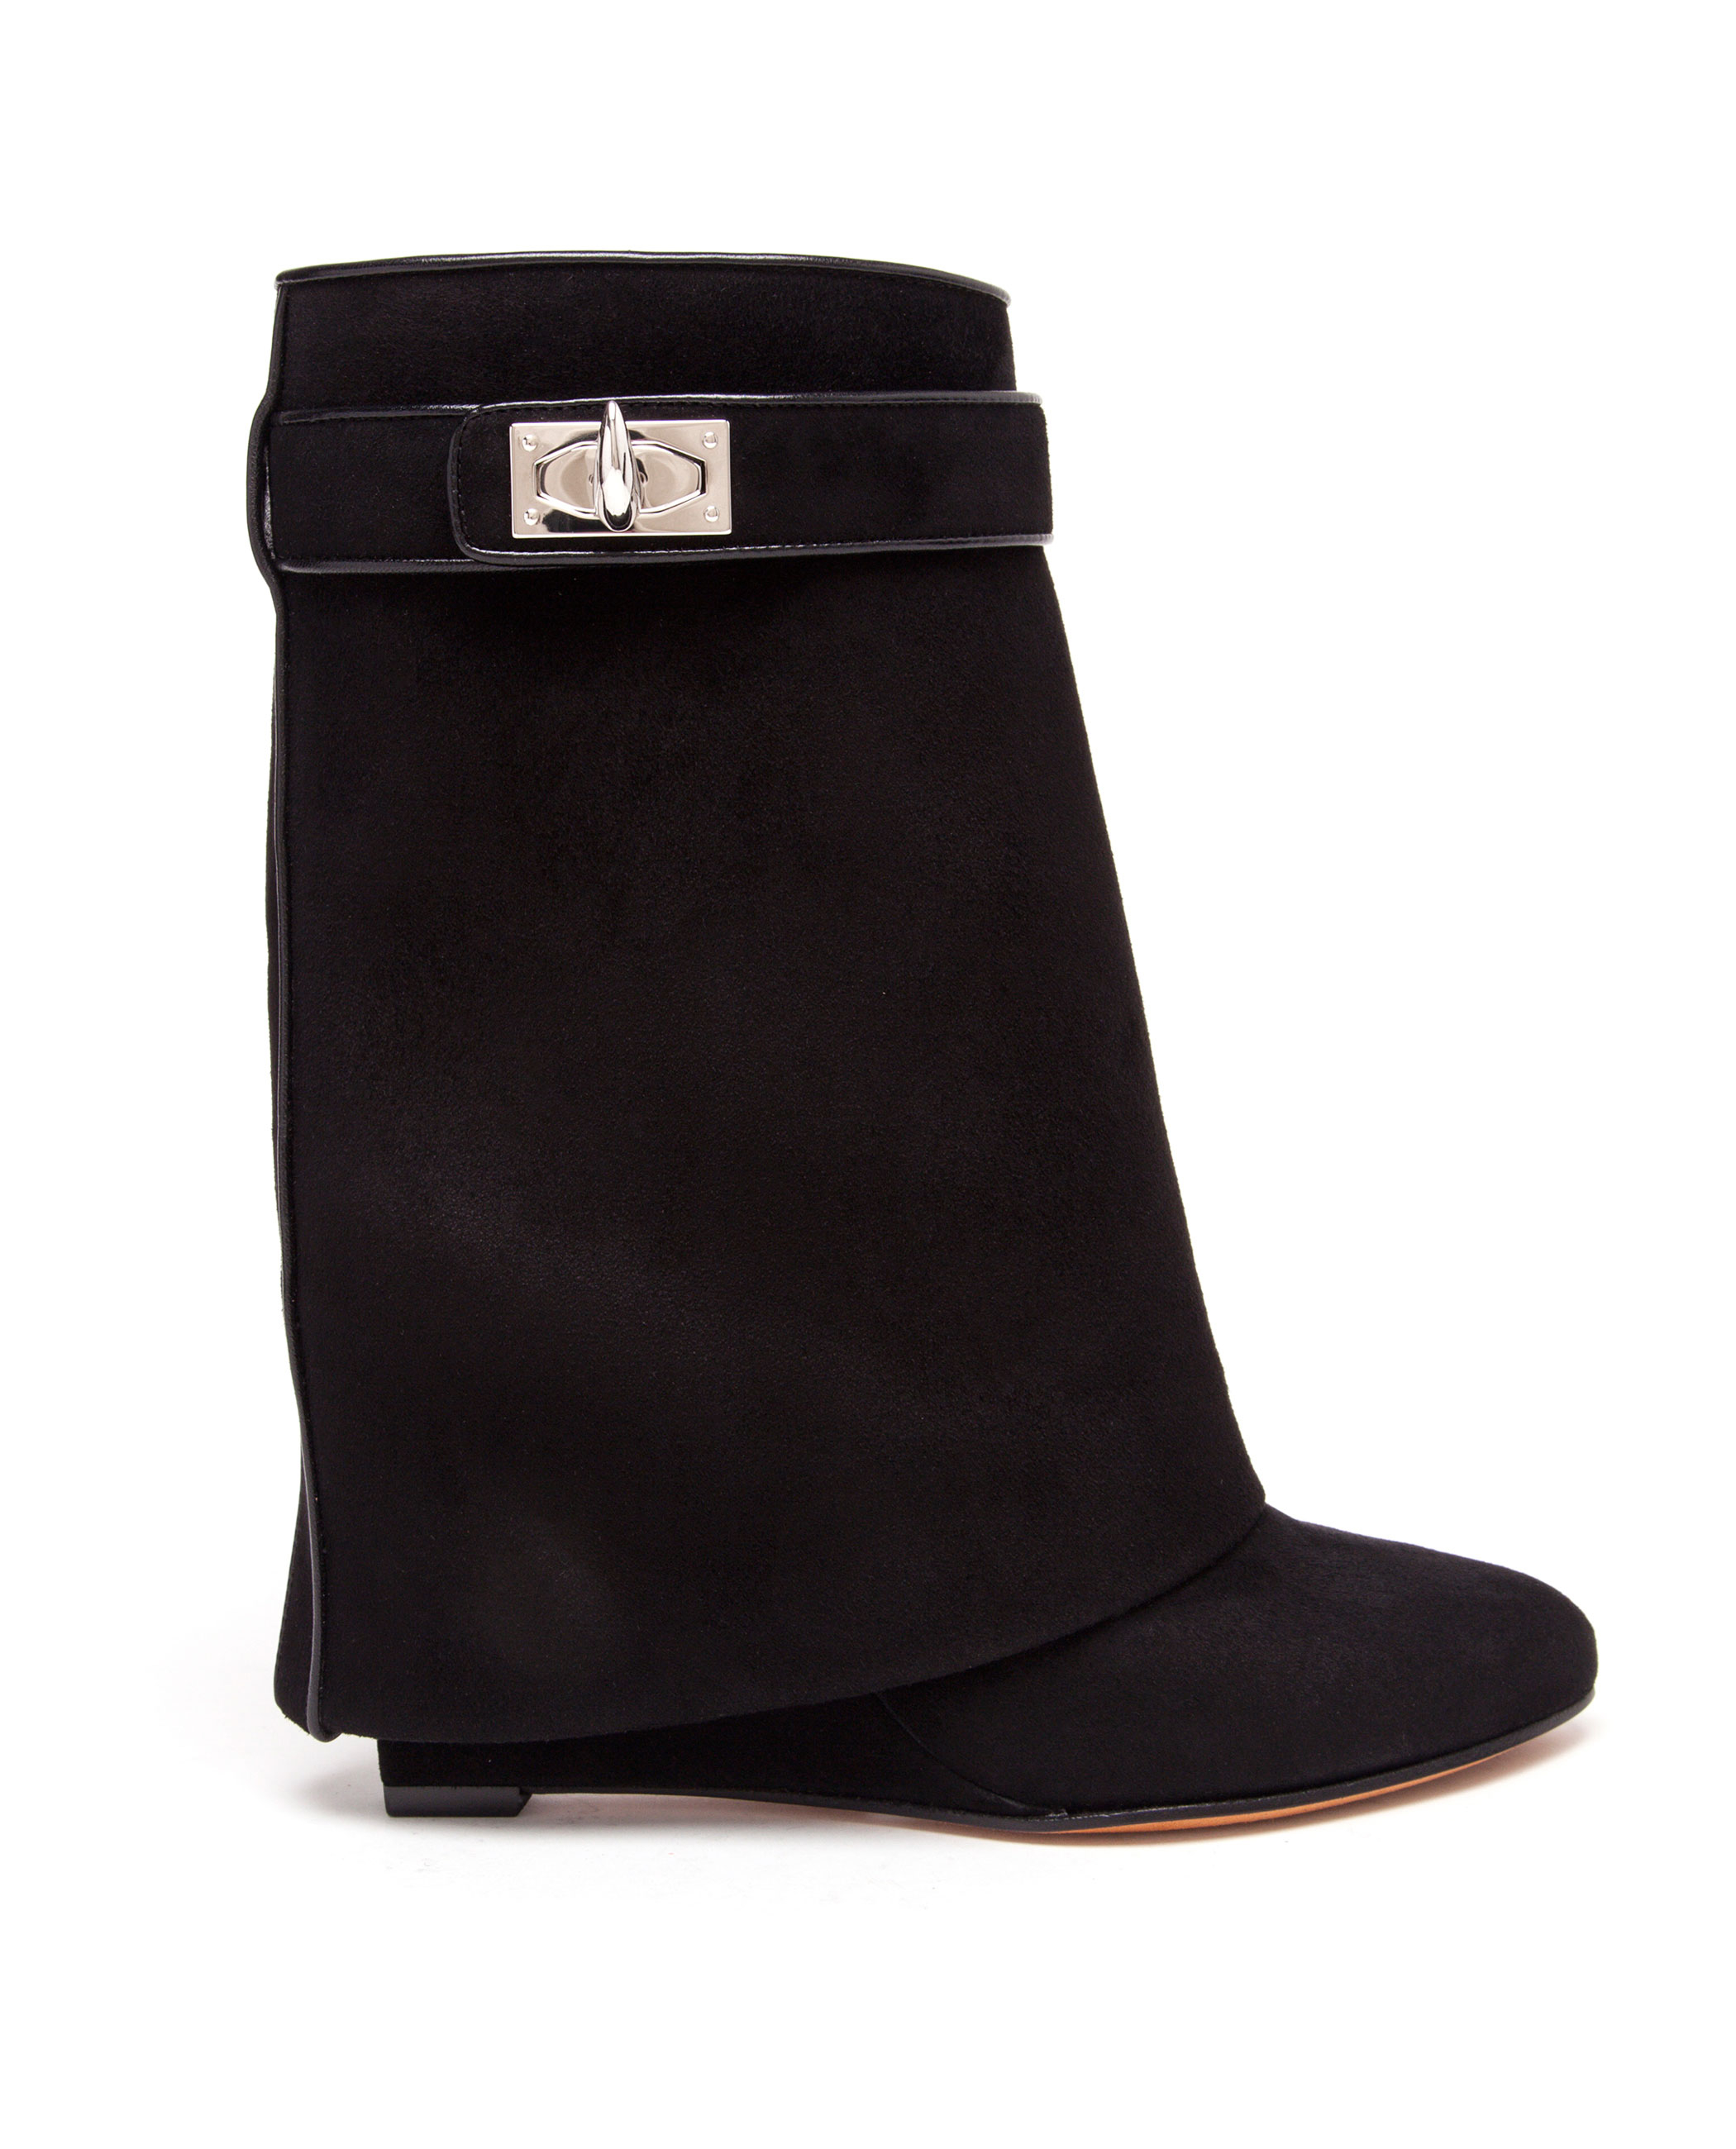 eb7987b8f69 Givenchy Shark Lock Suede Wedge Ankle Boots in Black - Lyst